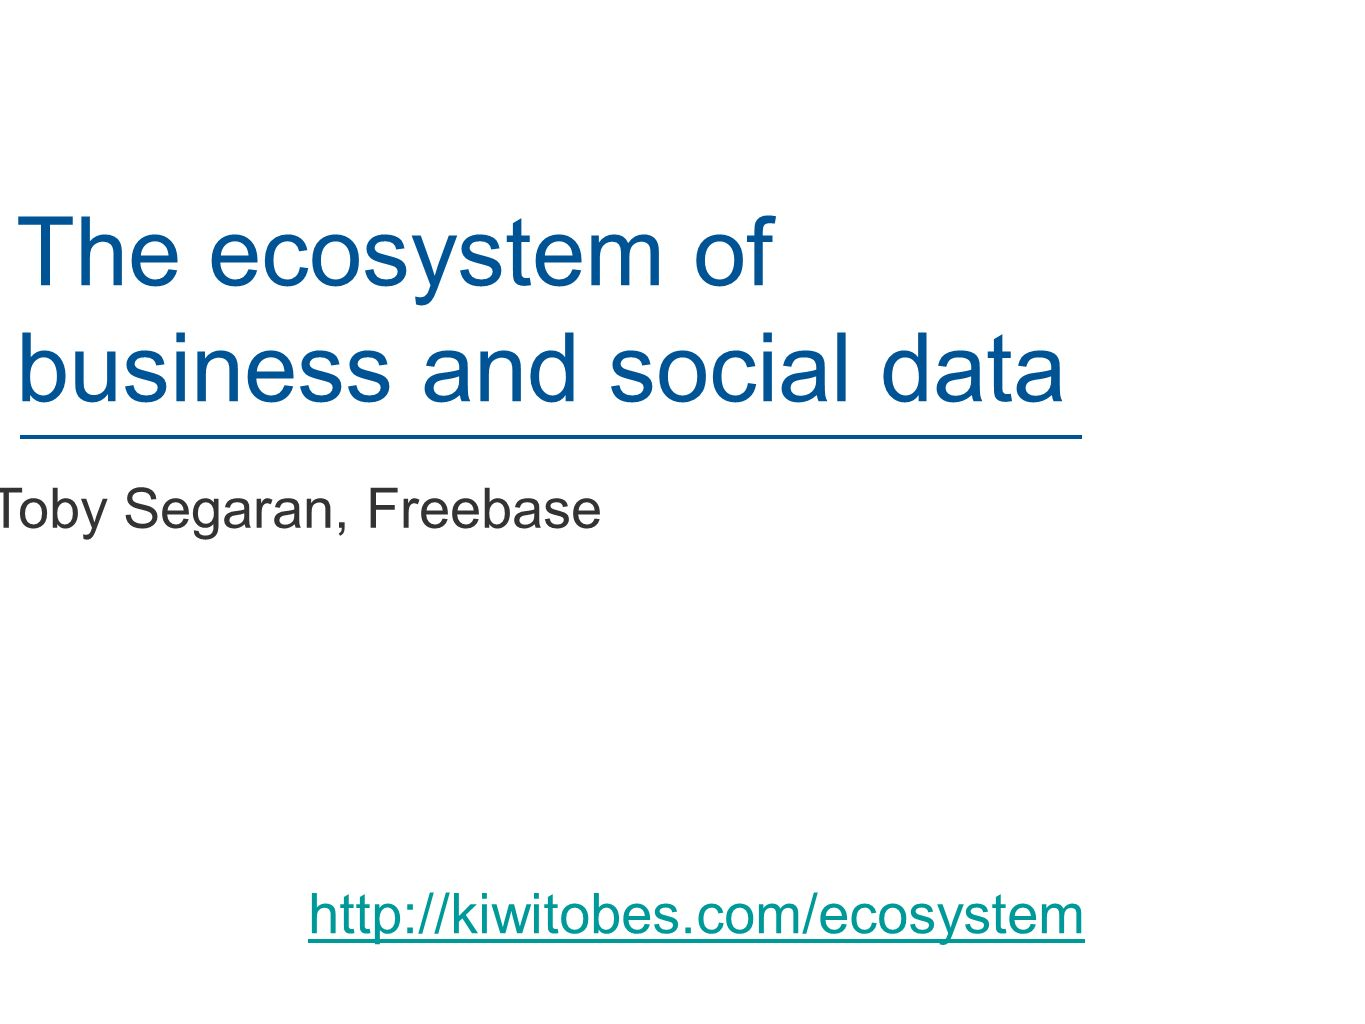 Toby Segaran, Freebase The ecosystem of business and social data http://kiwitobes.com/ecosystem